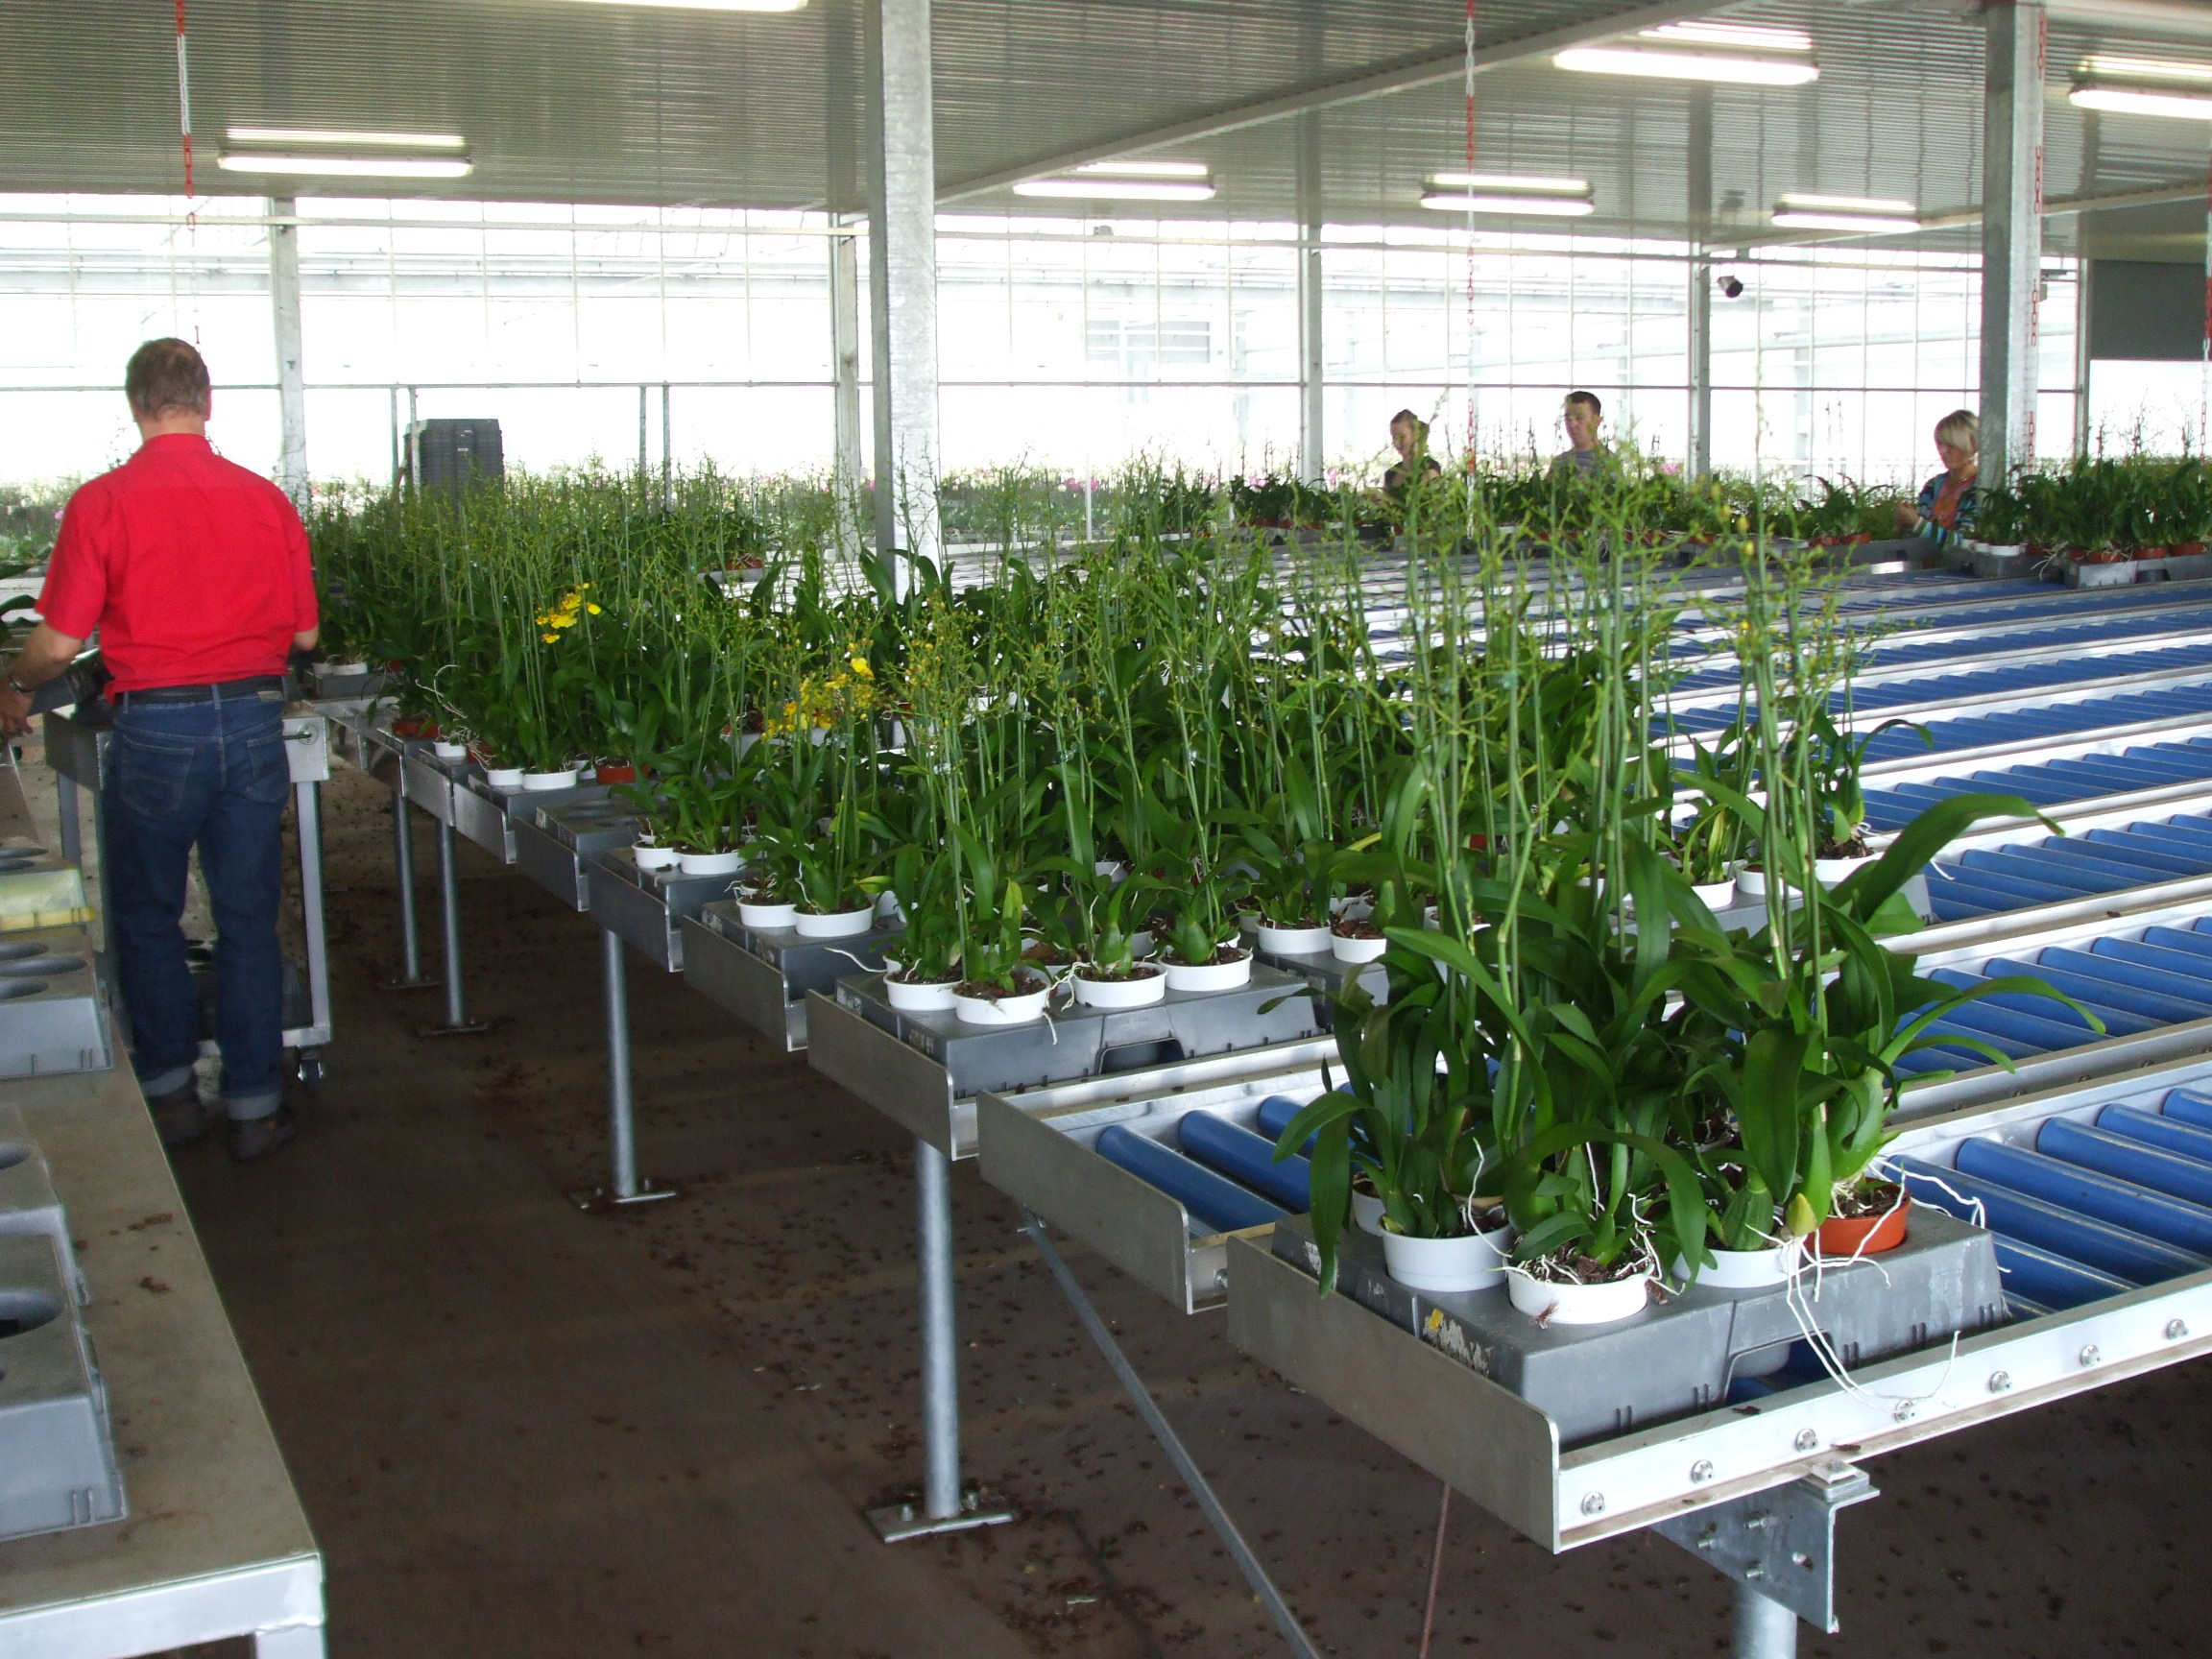 Plant Delivery Systems for Greenhouse Automation